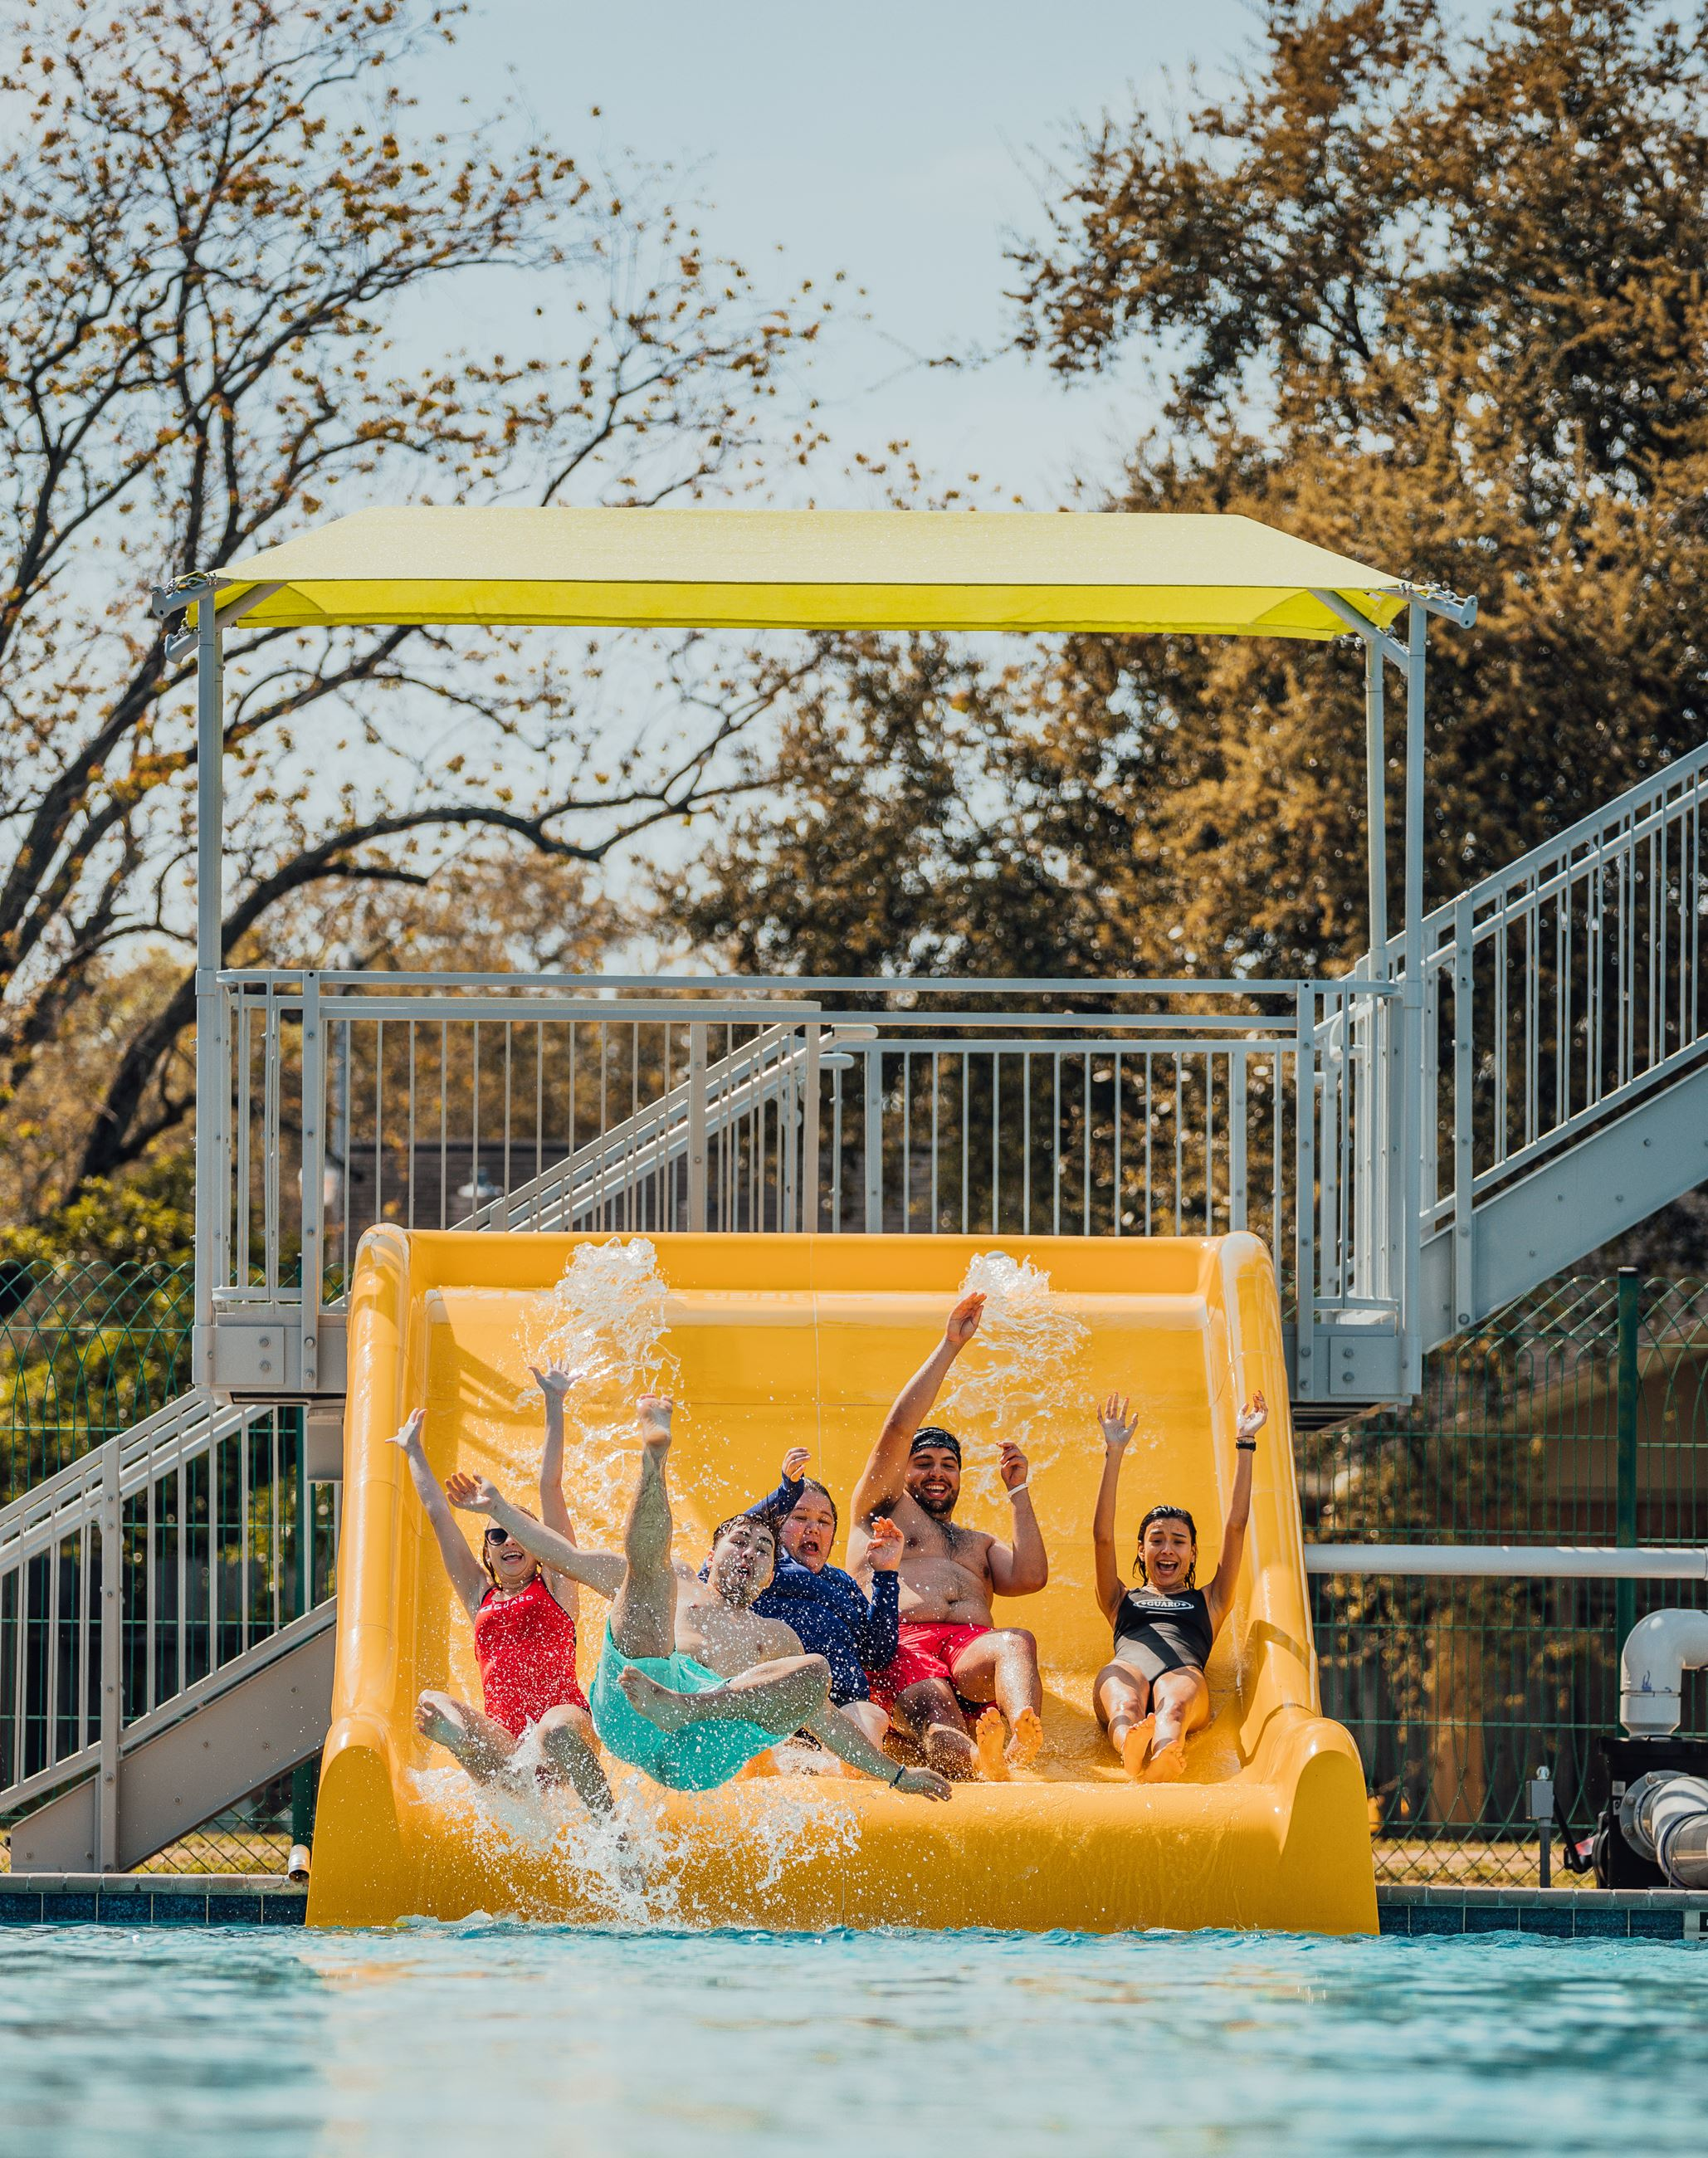 Five people sliding down giant slide into the pool